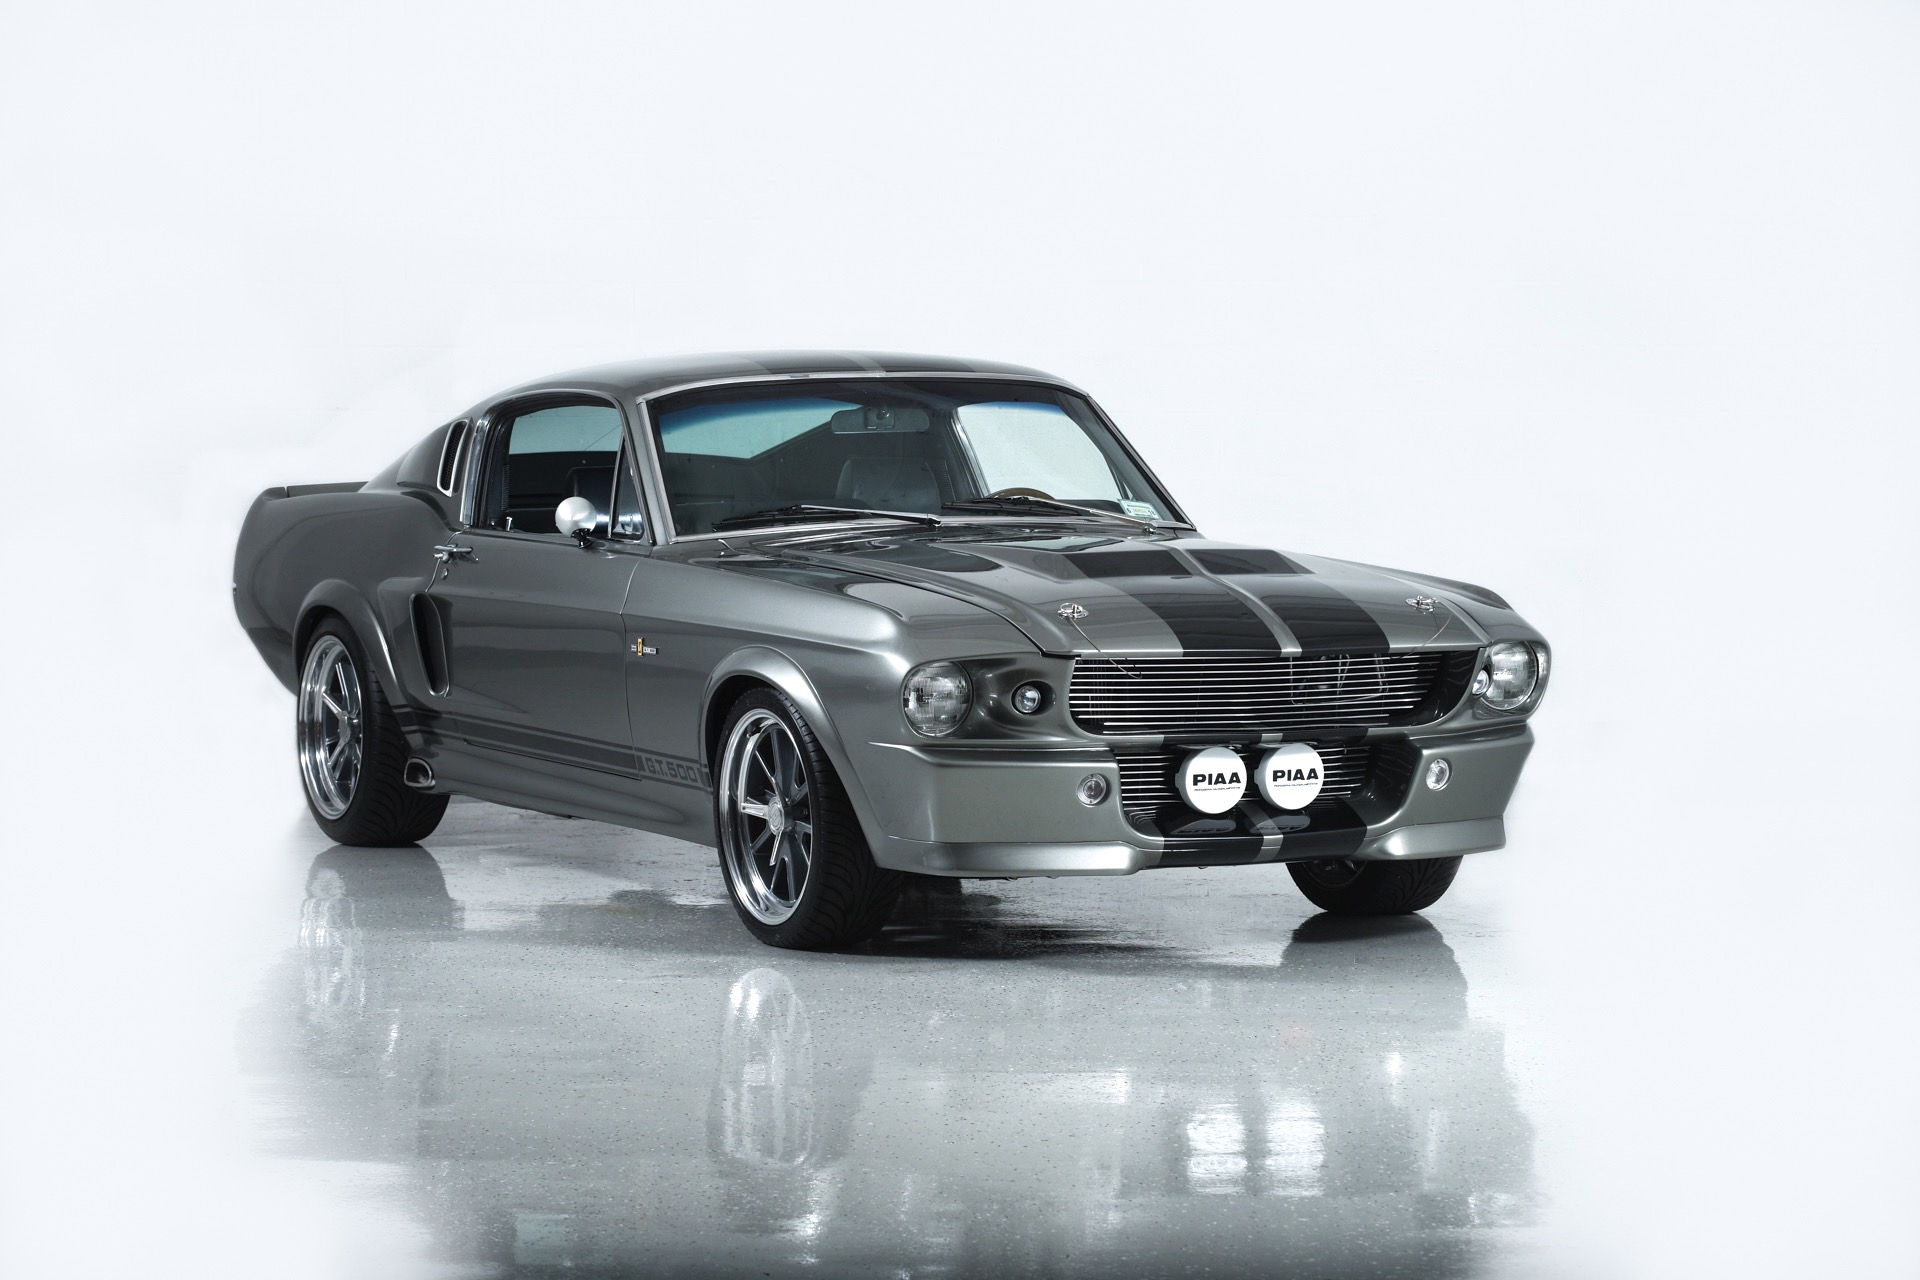 1967 Ford Shelby Mustang Eleanor Gt500 C 40 on car rotisserie kit